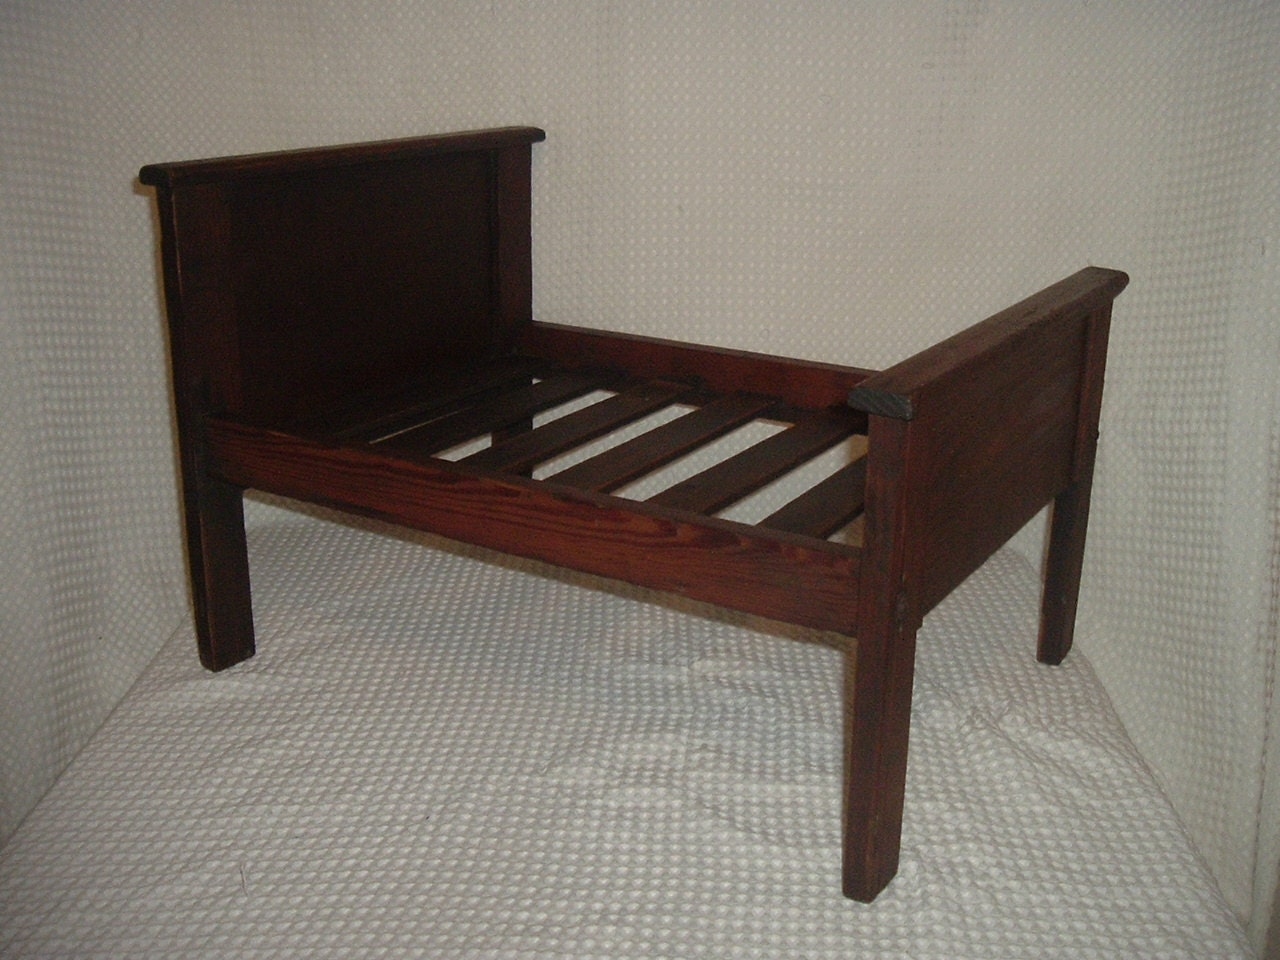 Amazing photo of Antique Wooden Baby Doll Bed or Pet Bed by VintageGlobal on Etsy with #2C1D17 color and 1280x960 pixels